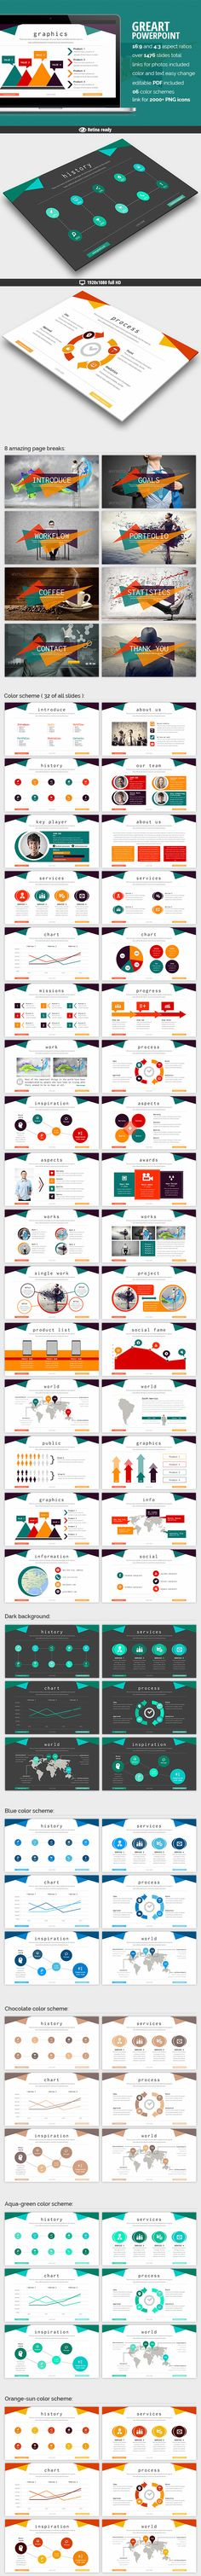 Greart - Powerpoint Presentation PowerPoint Template / Theme / Presentation / Slides / Background / Power Point #powerpoint #template #theme